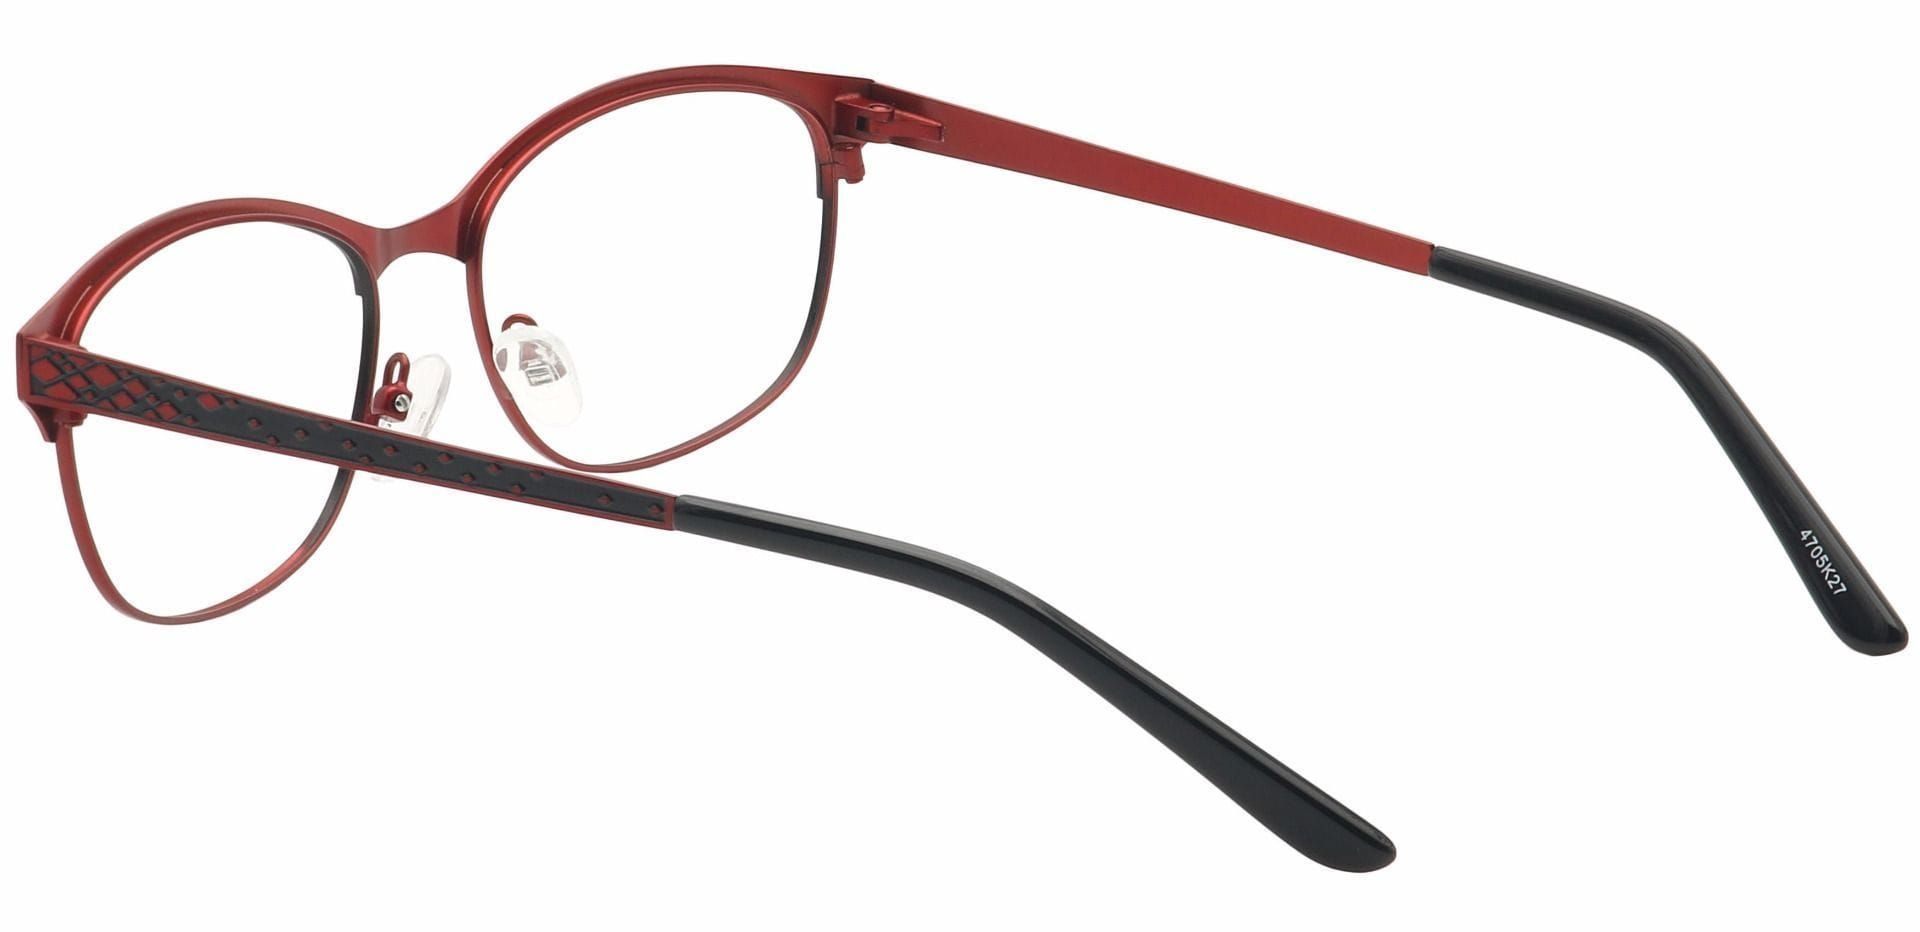 Aria Oval Blue Light Blocking Glasses - Red